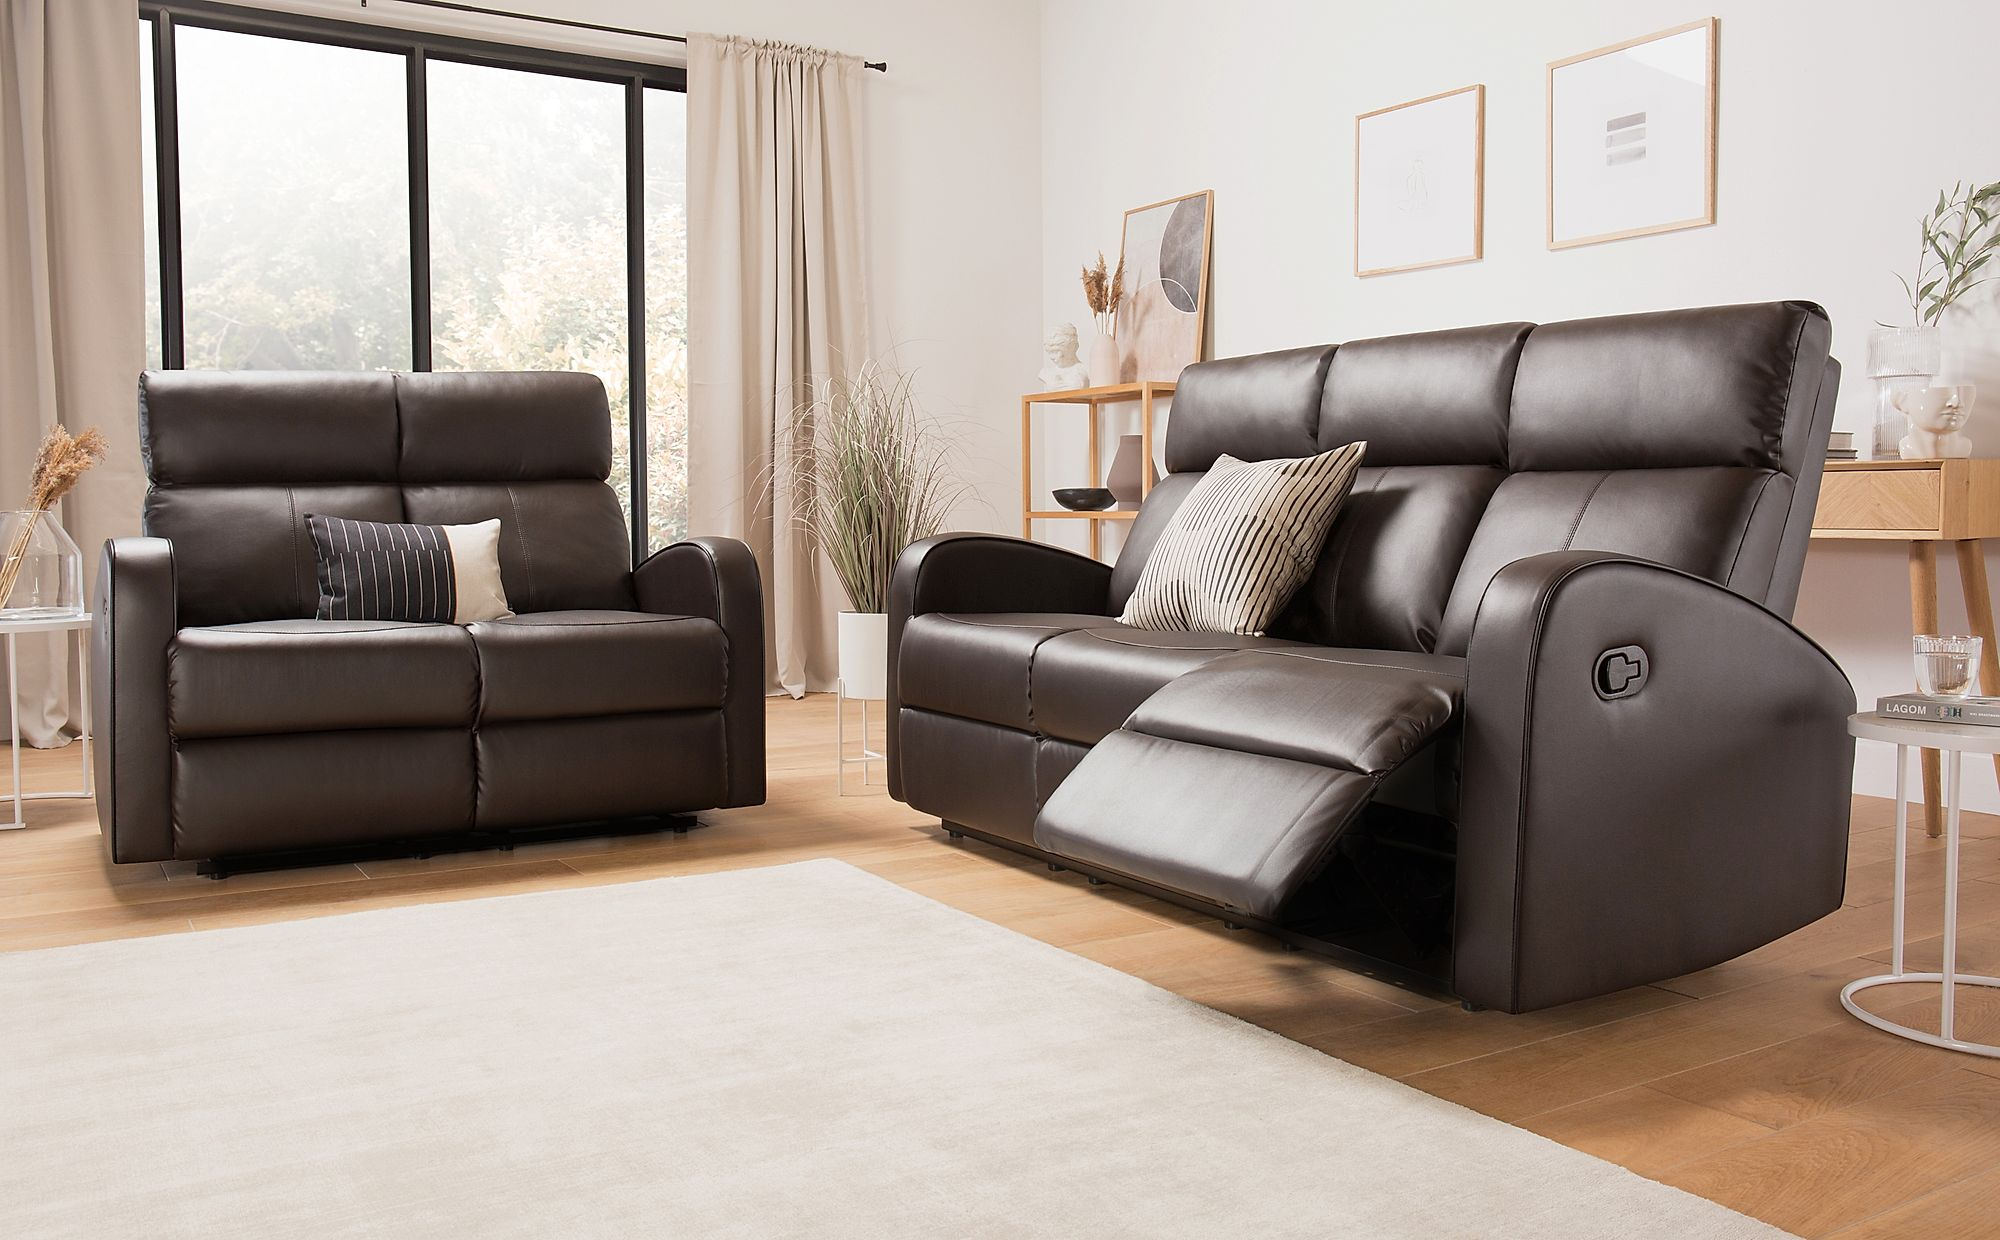 Ashby Brown Leather 3+2 Seater Recliner Sofa Set ...